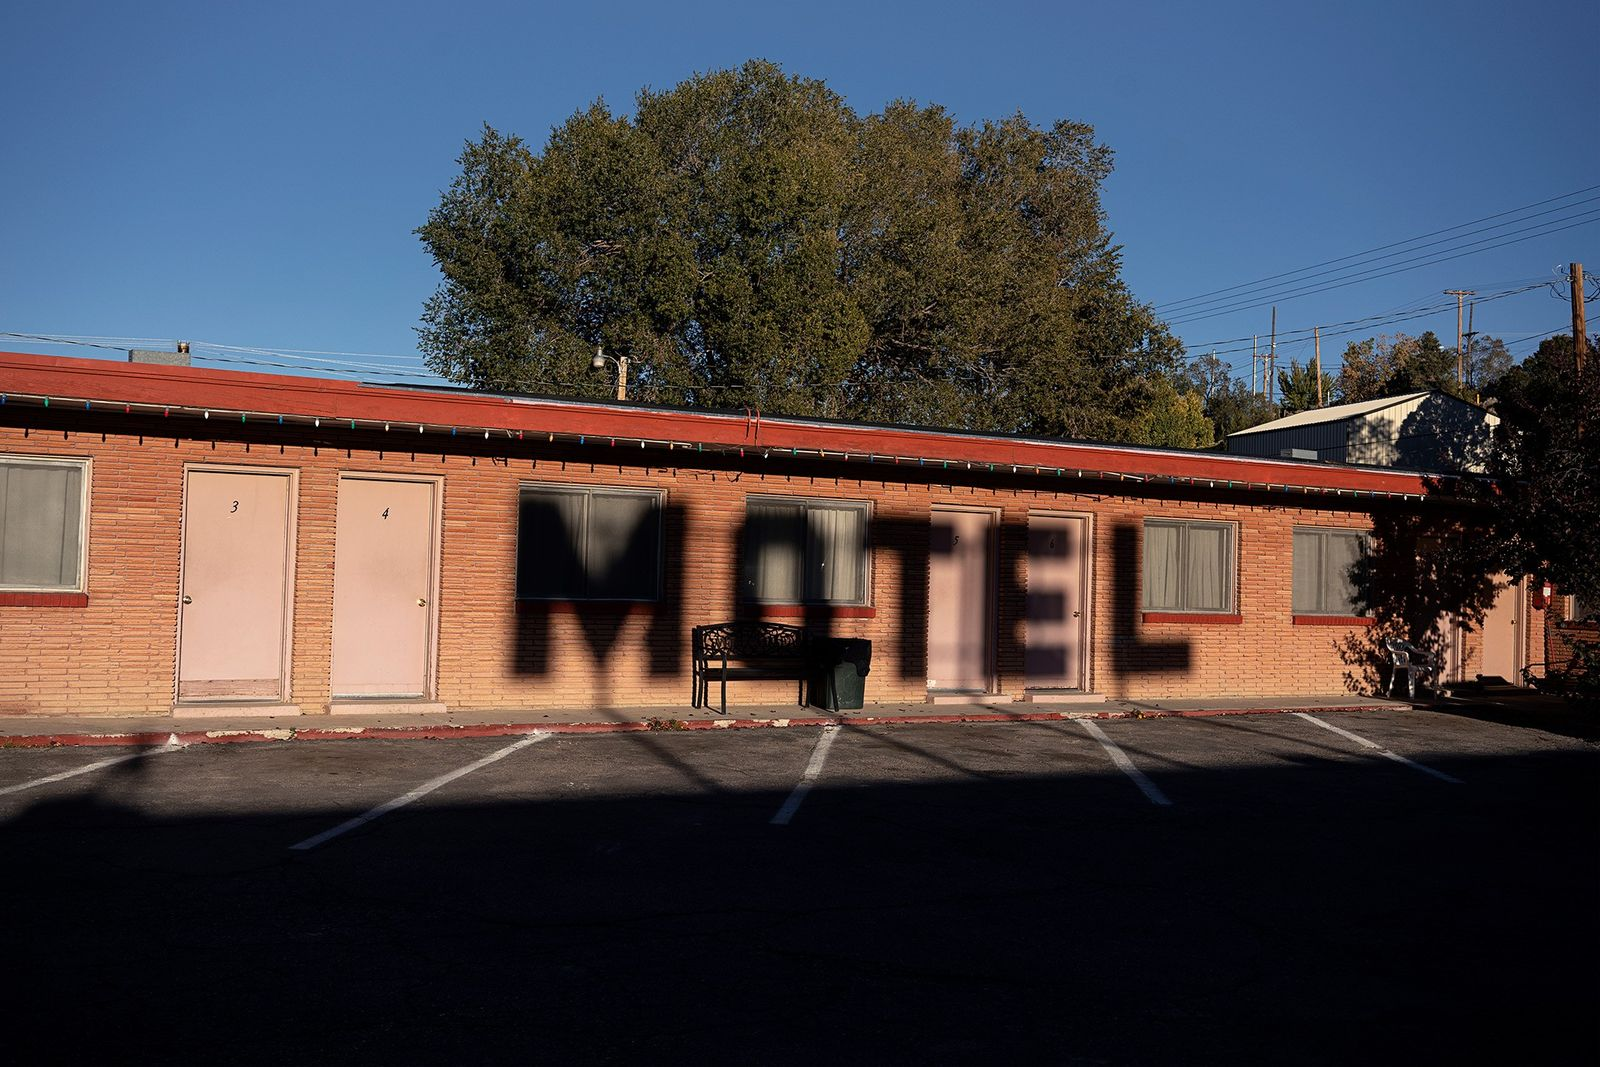 Deser-est Motor Lodge, Nevada